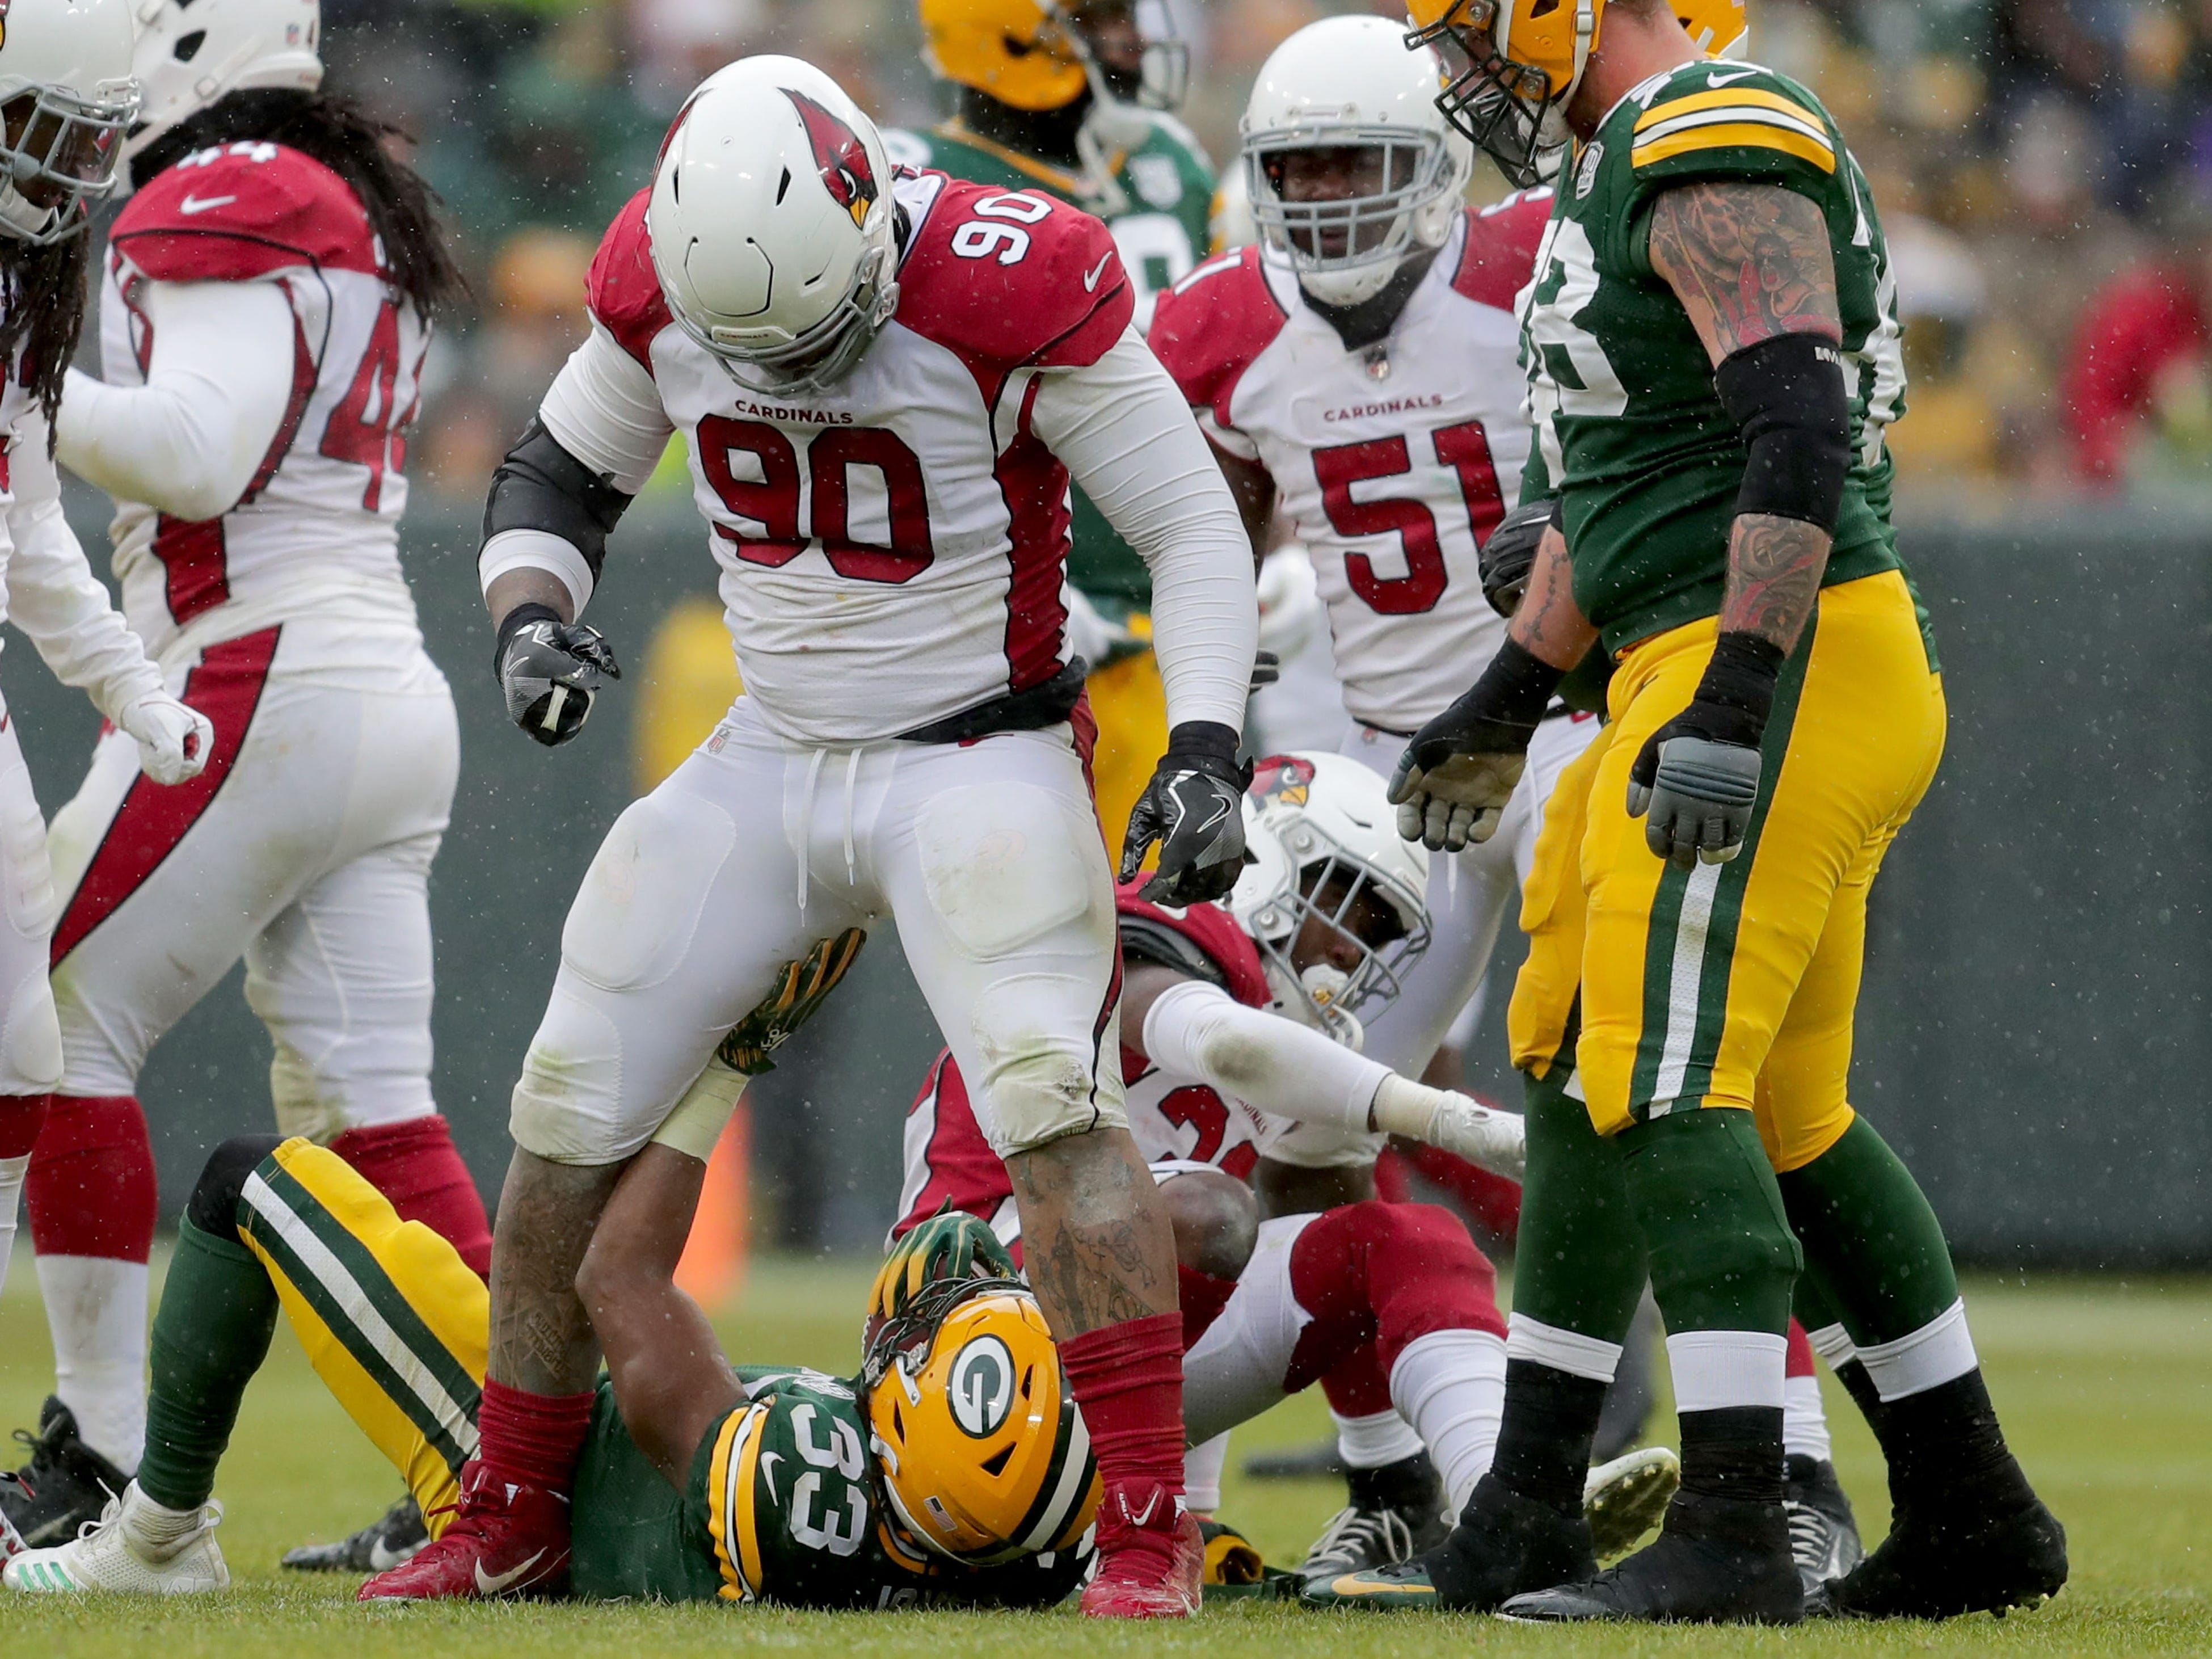 Arizona Cardinals defensive tackle Robert Nkemdiche (90) stands over Green Bay Packers running back Aaron Jones (33) during the 3rd quarter of Green Bay Packers game 20-17 loss against the Arizona Cardinals on Sunday, December 2, 2018 at Lambeau Field in Green Bay, Wis. Mike De Sisti / USA TODAY NETWORK-Wis